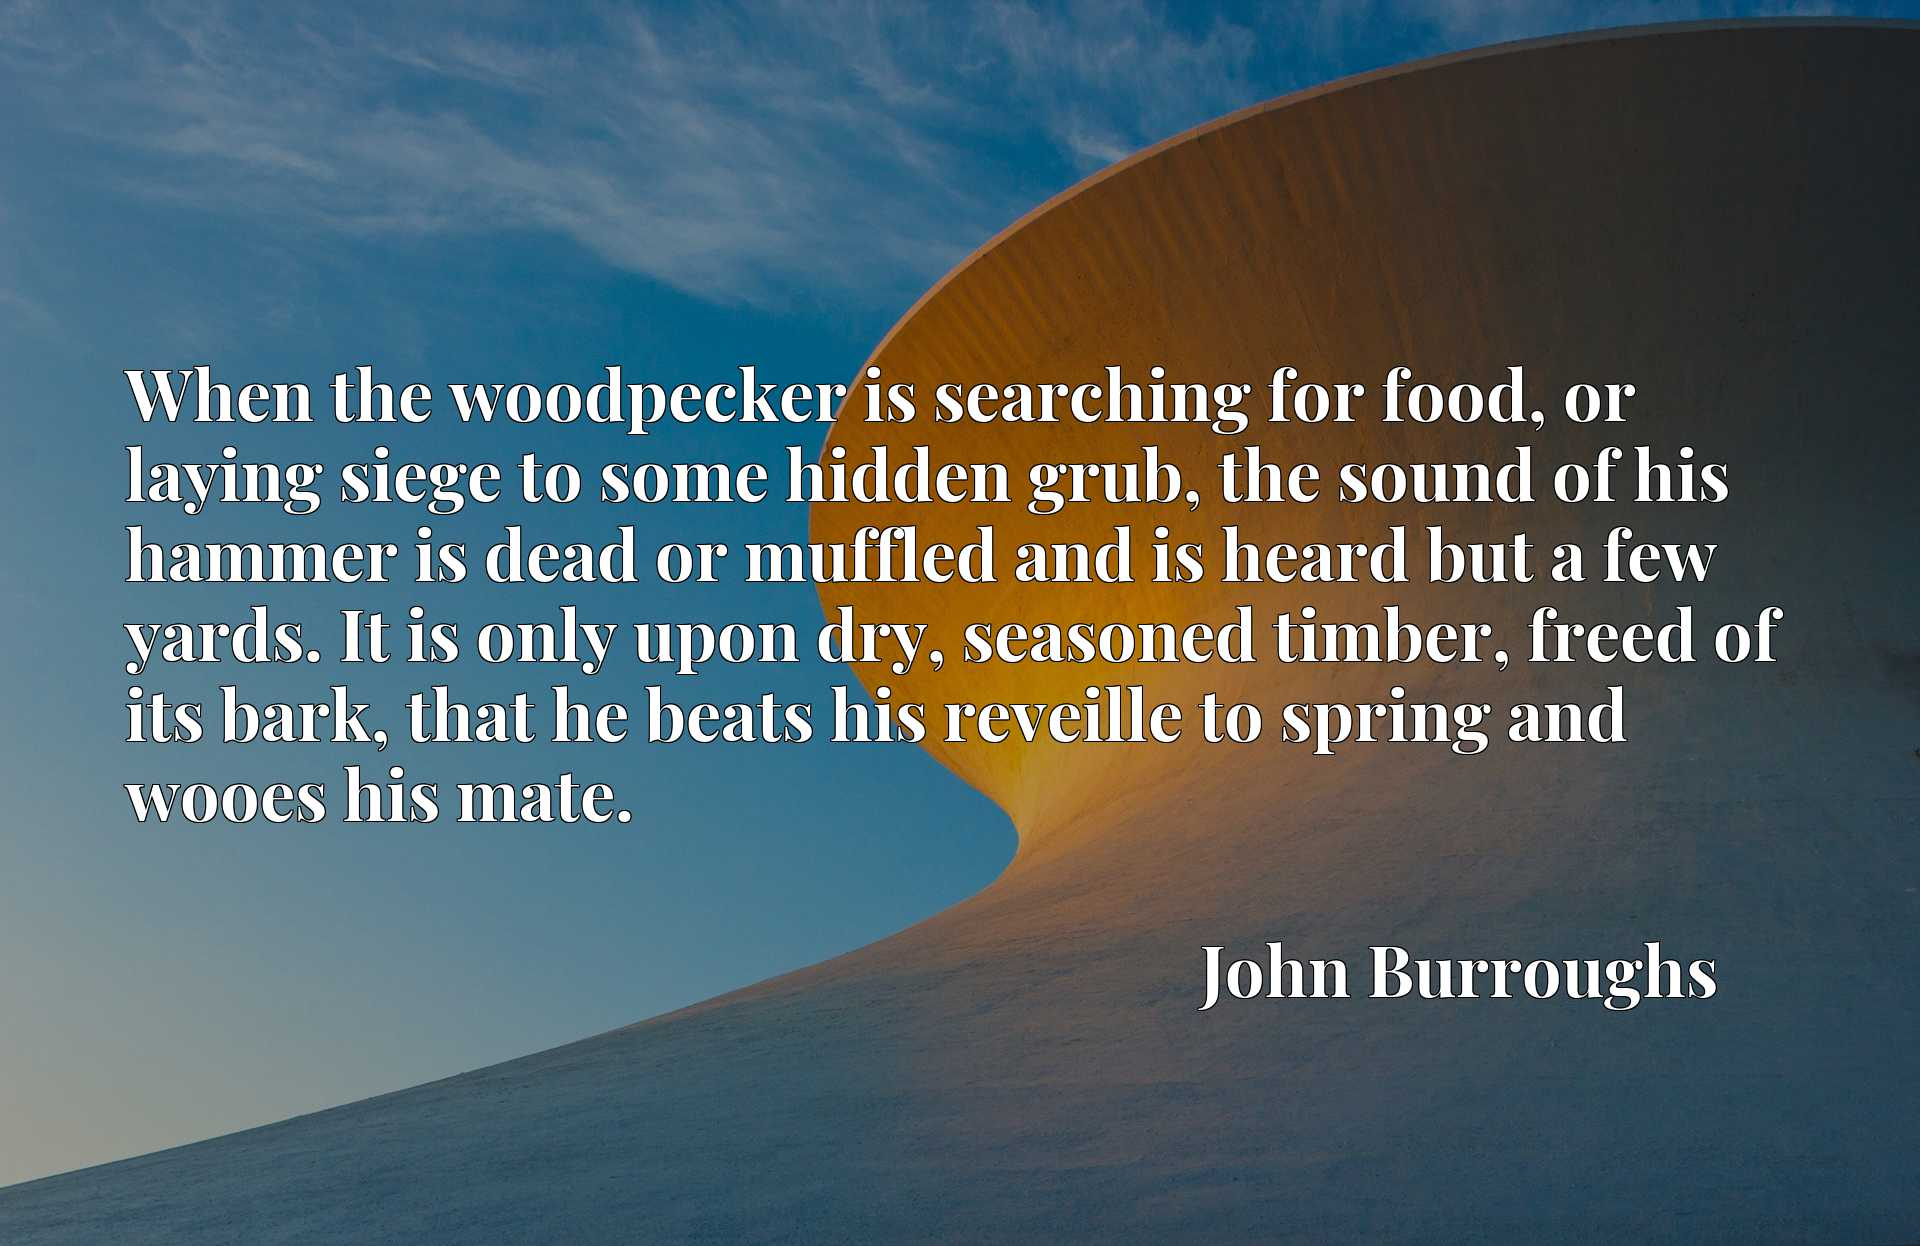 When the woodpecker is searching for food, or laying siege to some hidden grub, the sound of his hammer is dead or muffled and is heard but a few yards. It is only upon dry, seasoned timber, freed of its bark, that he beats his reveille to spring and wooes his mate.